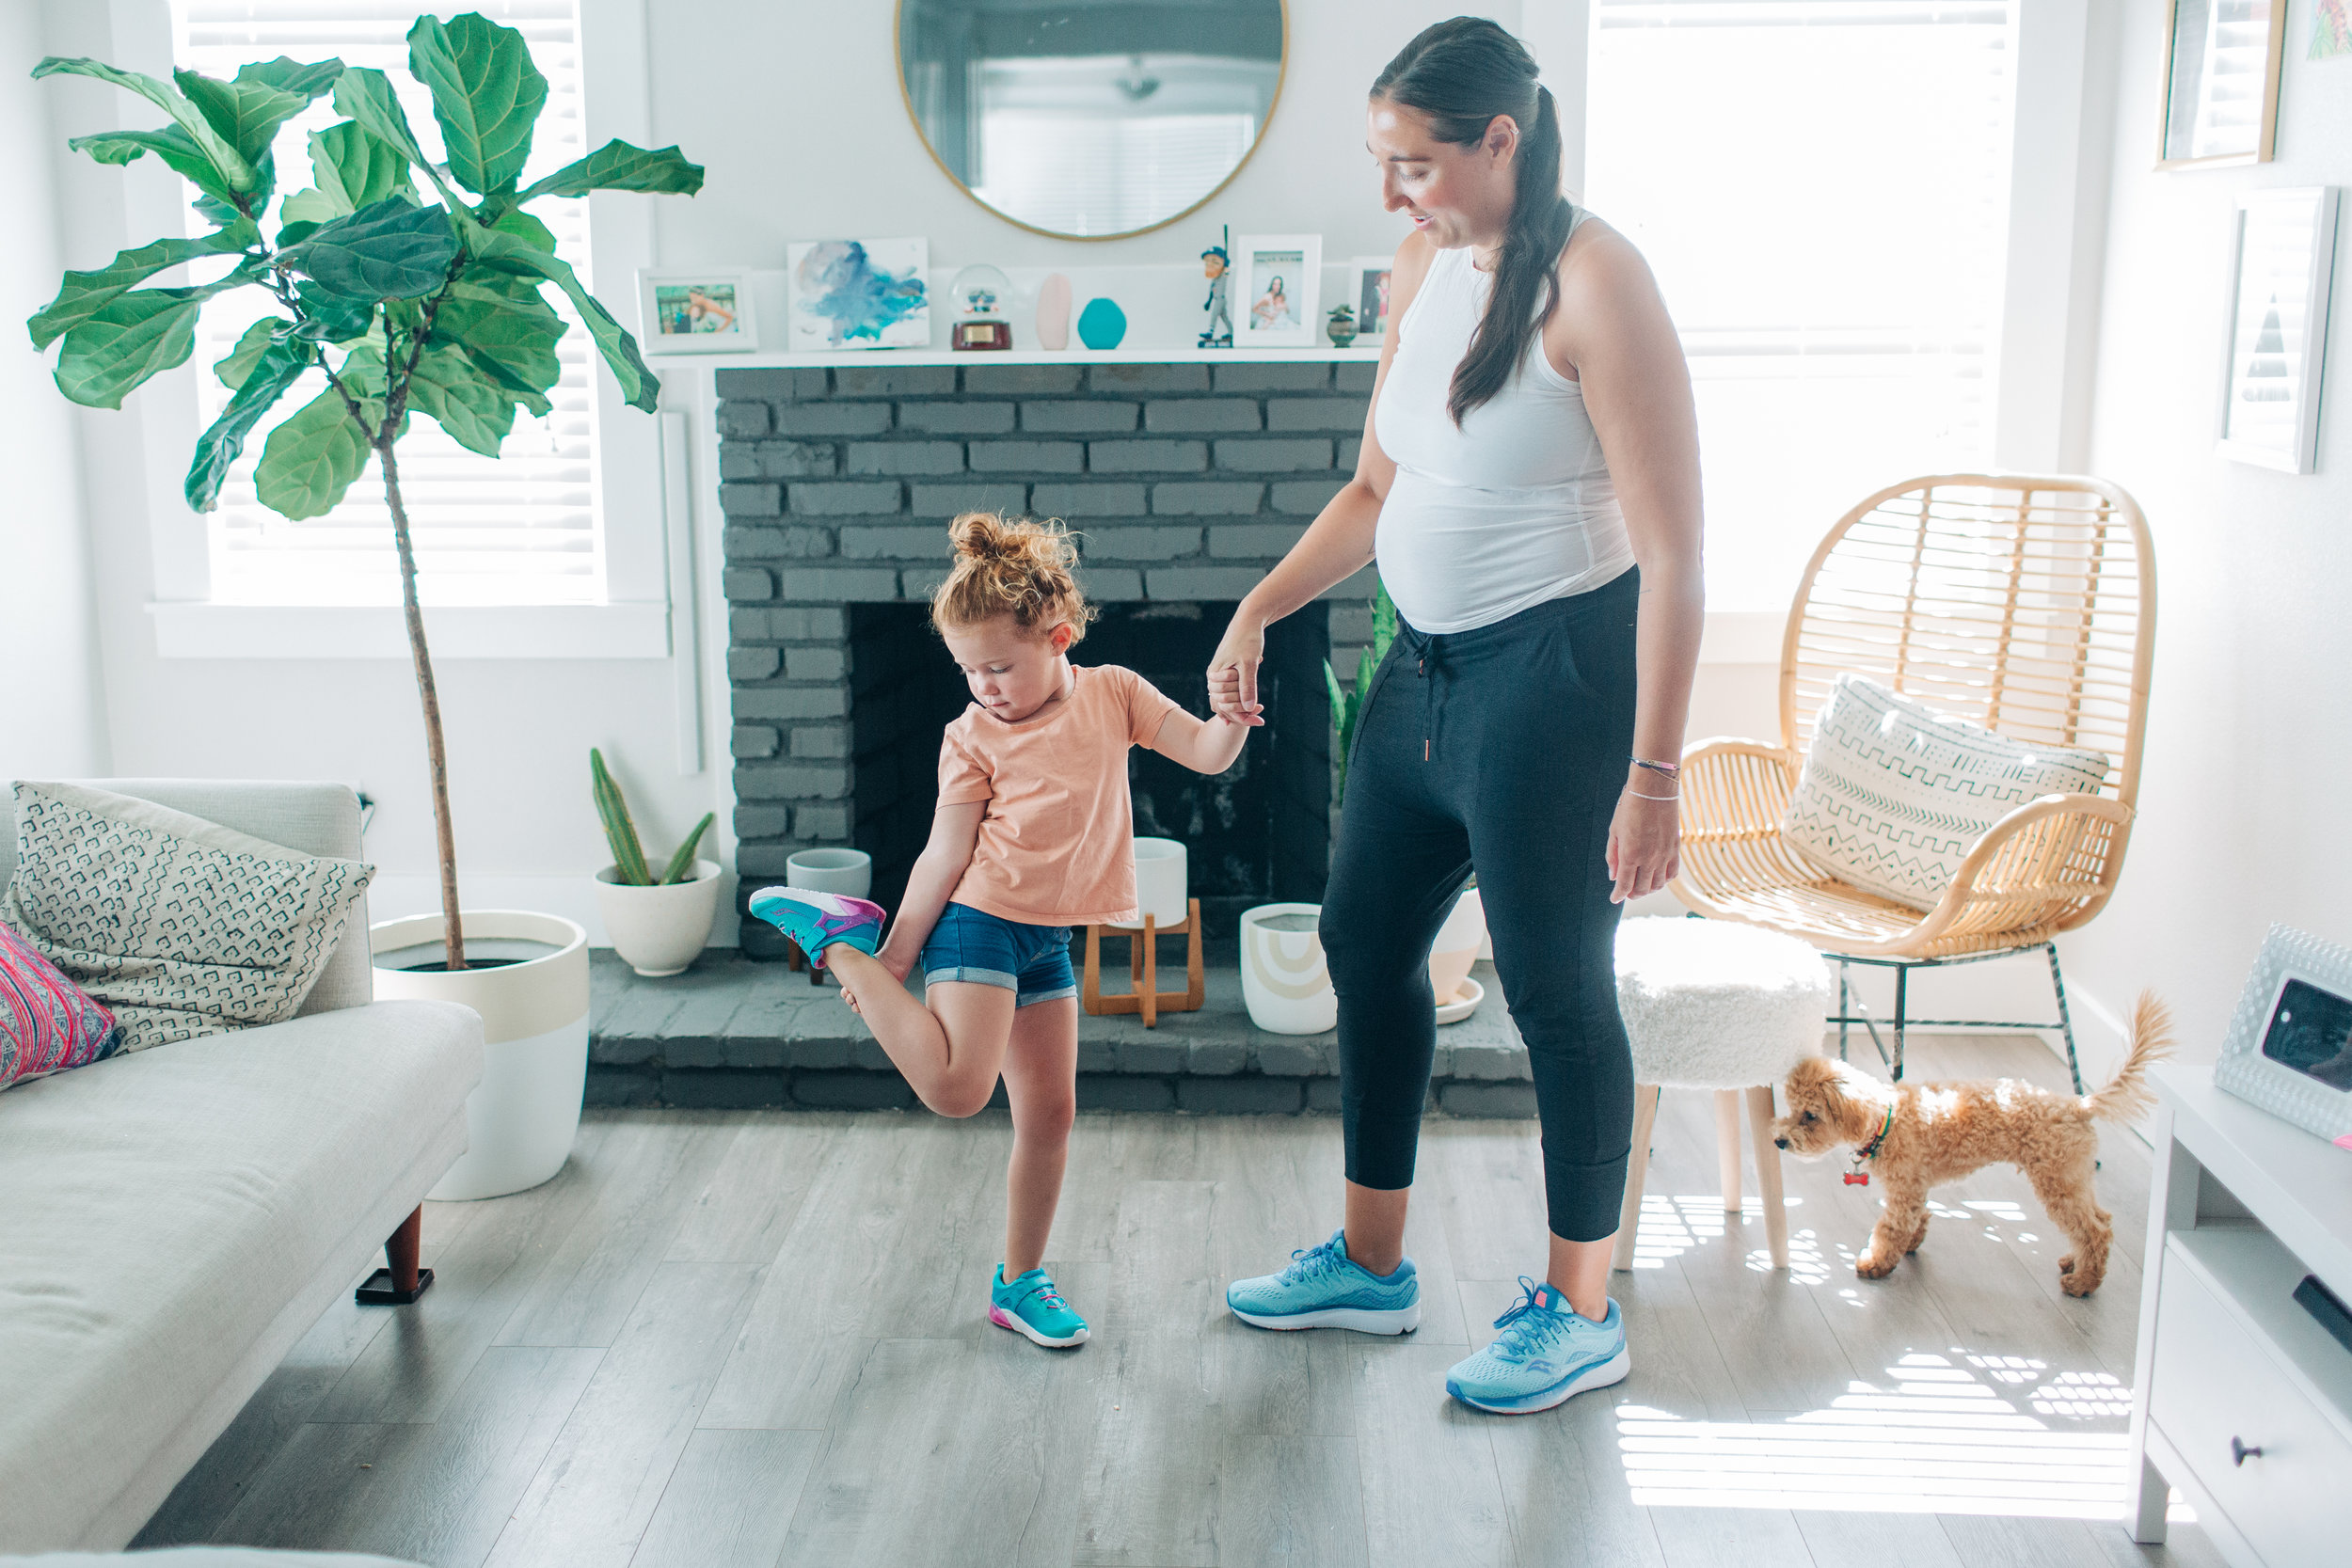 Since I'm pregnant and not running right now, I try and get outside with Mila everyday for some physical activity. We always start by doing a little stretching inside!